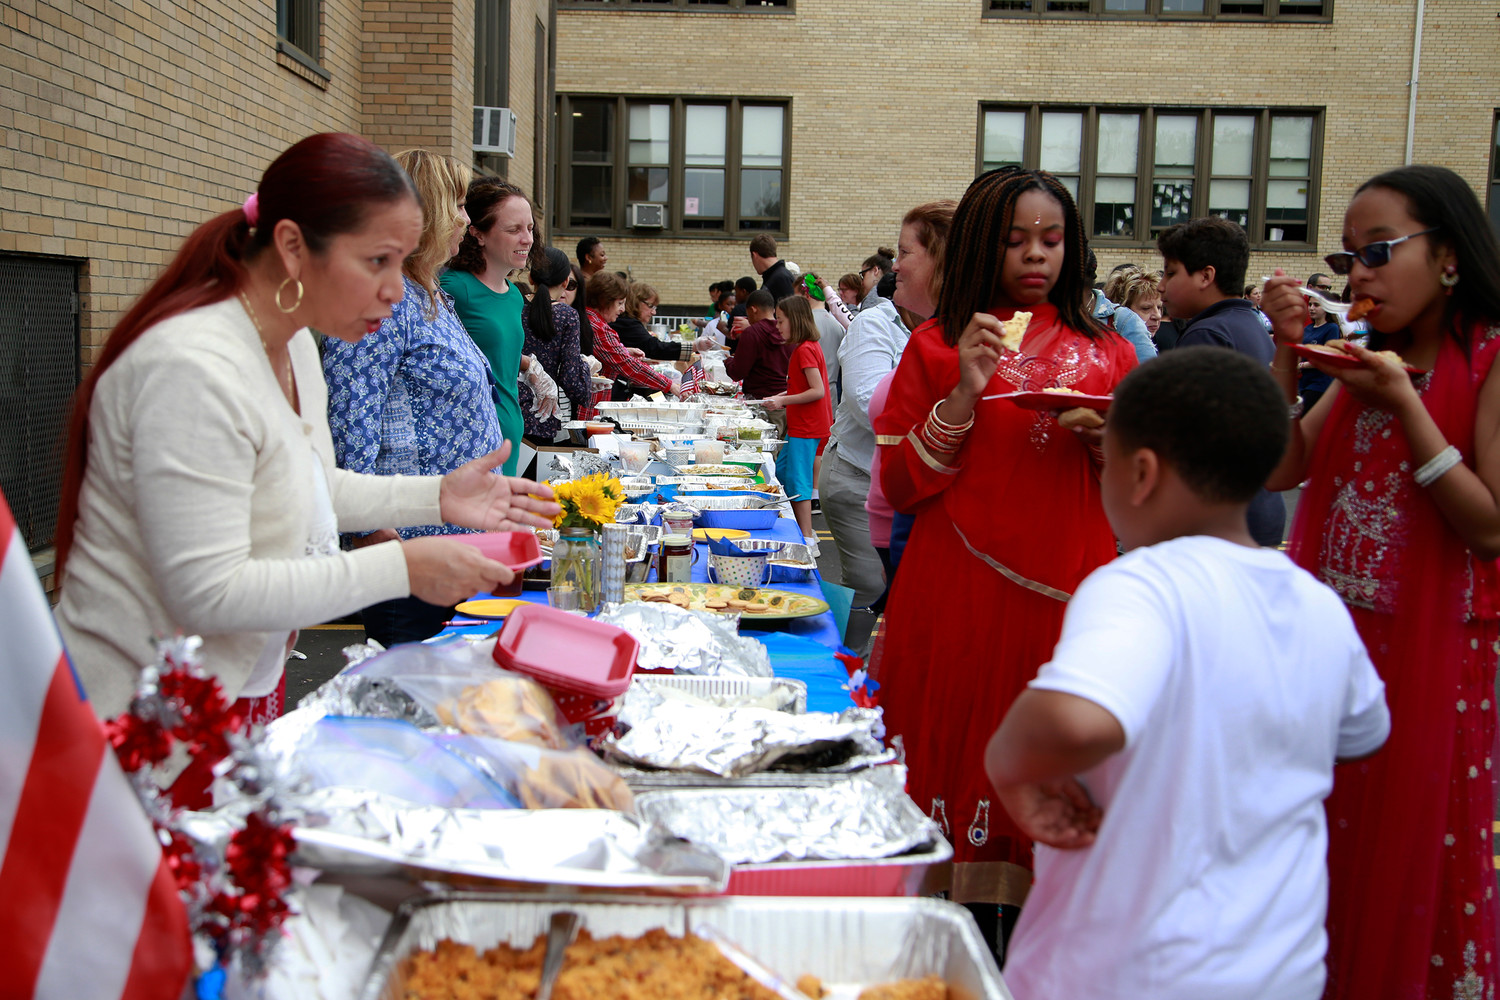 Parents brought homemade food items from their home countries for everyone to enjoy.